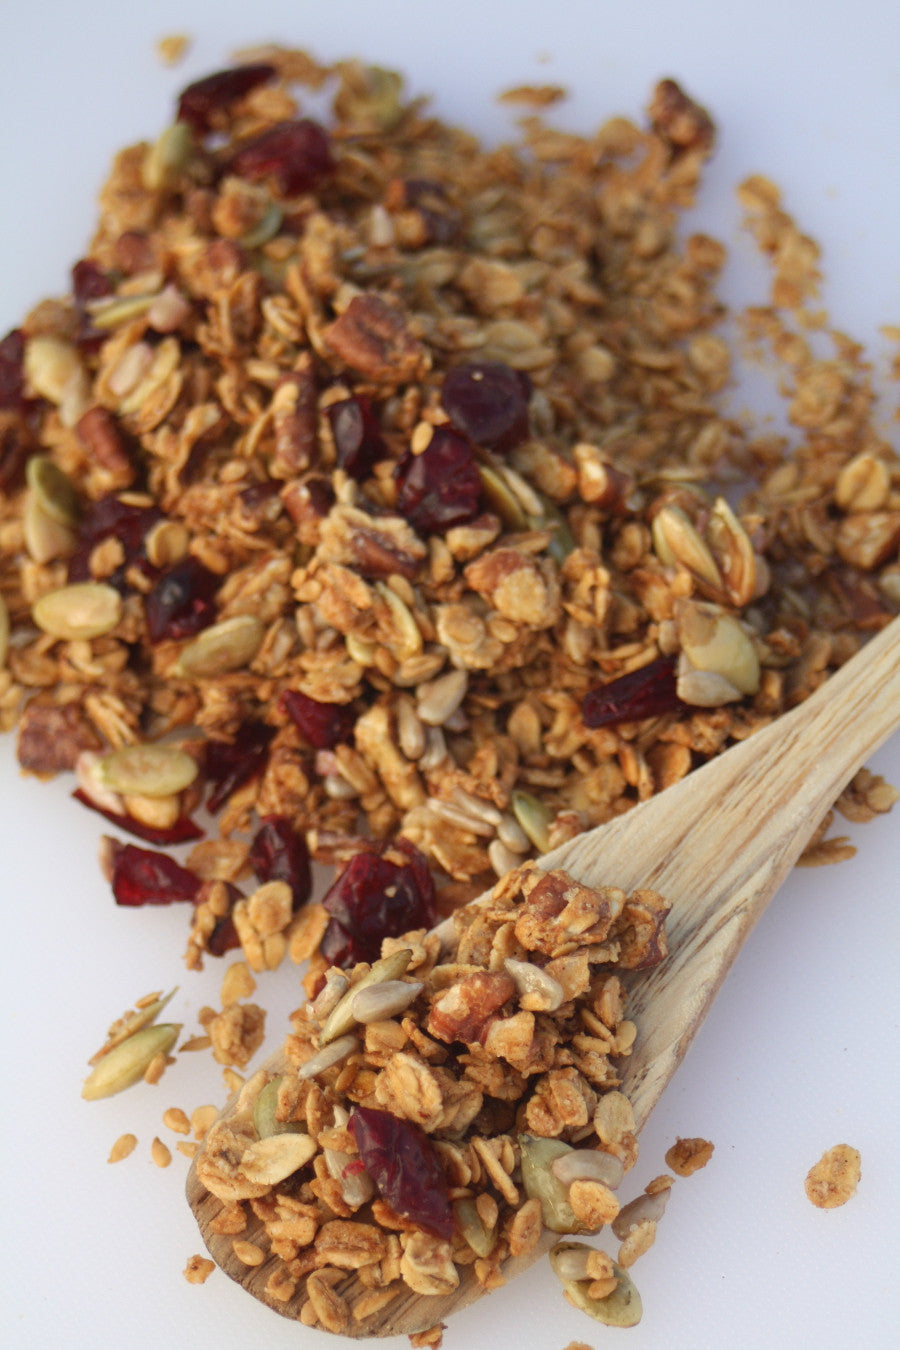 Our Cranberry Maple Pecan Granola is handcrafted here in our kitchen with high quality ingredients and no added preservatives, artificial flavoring, or trans fats.